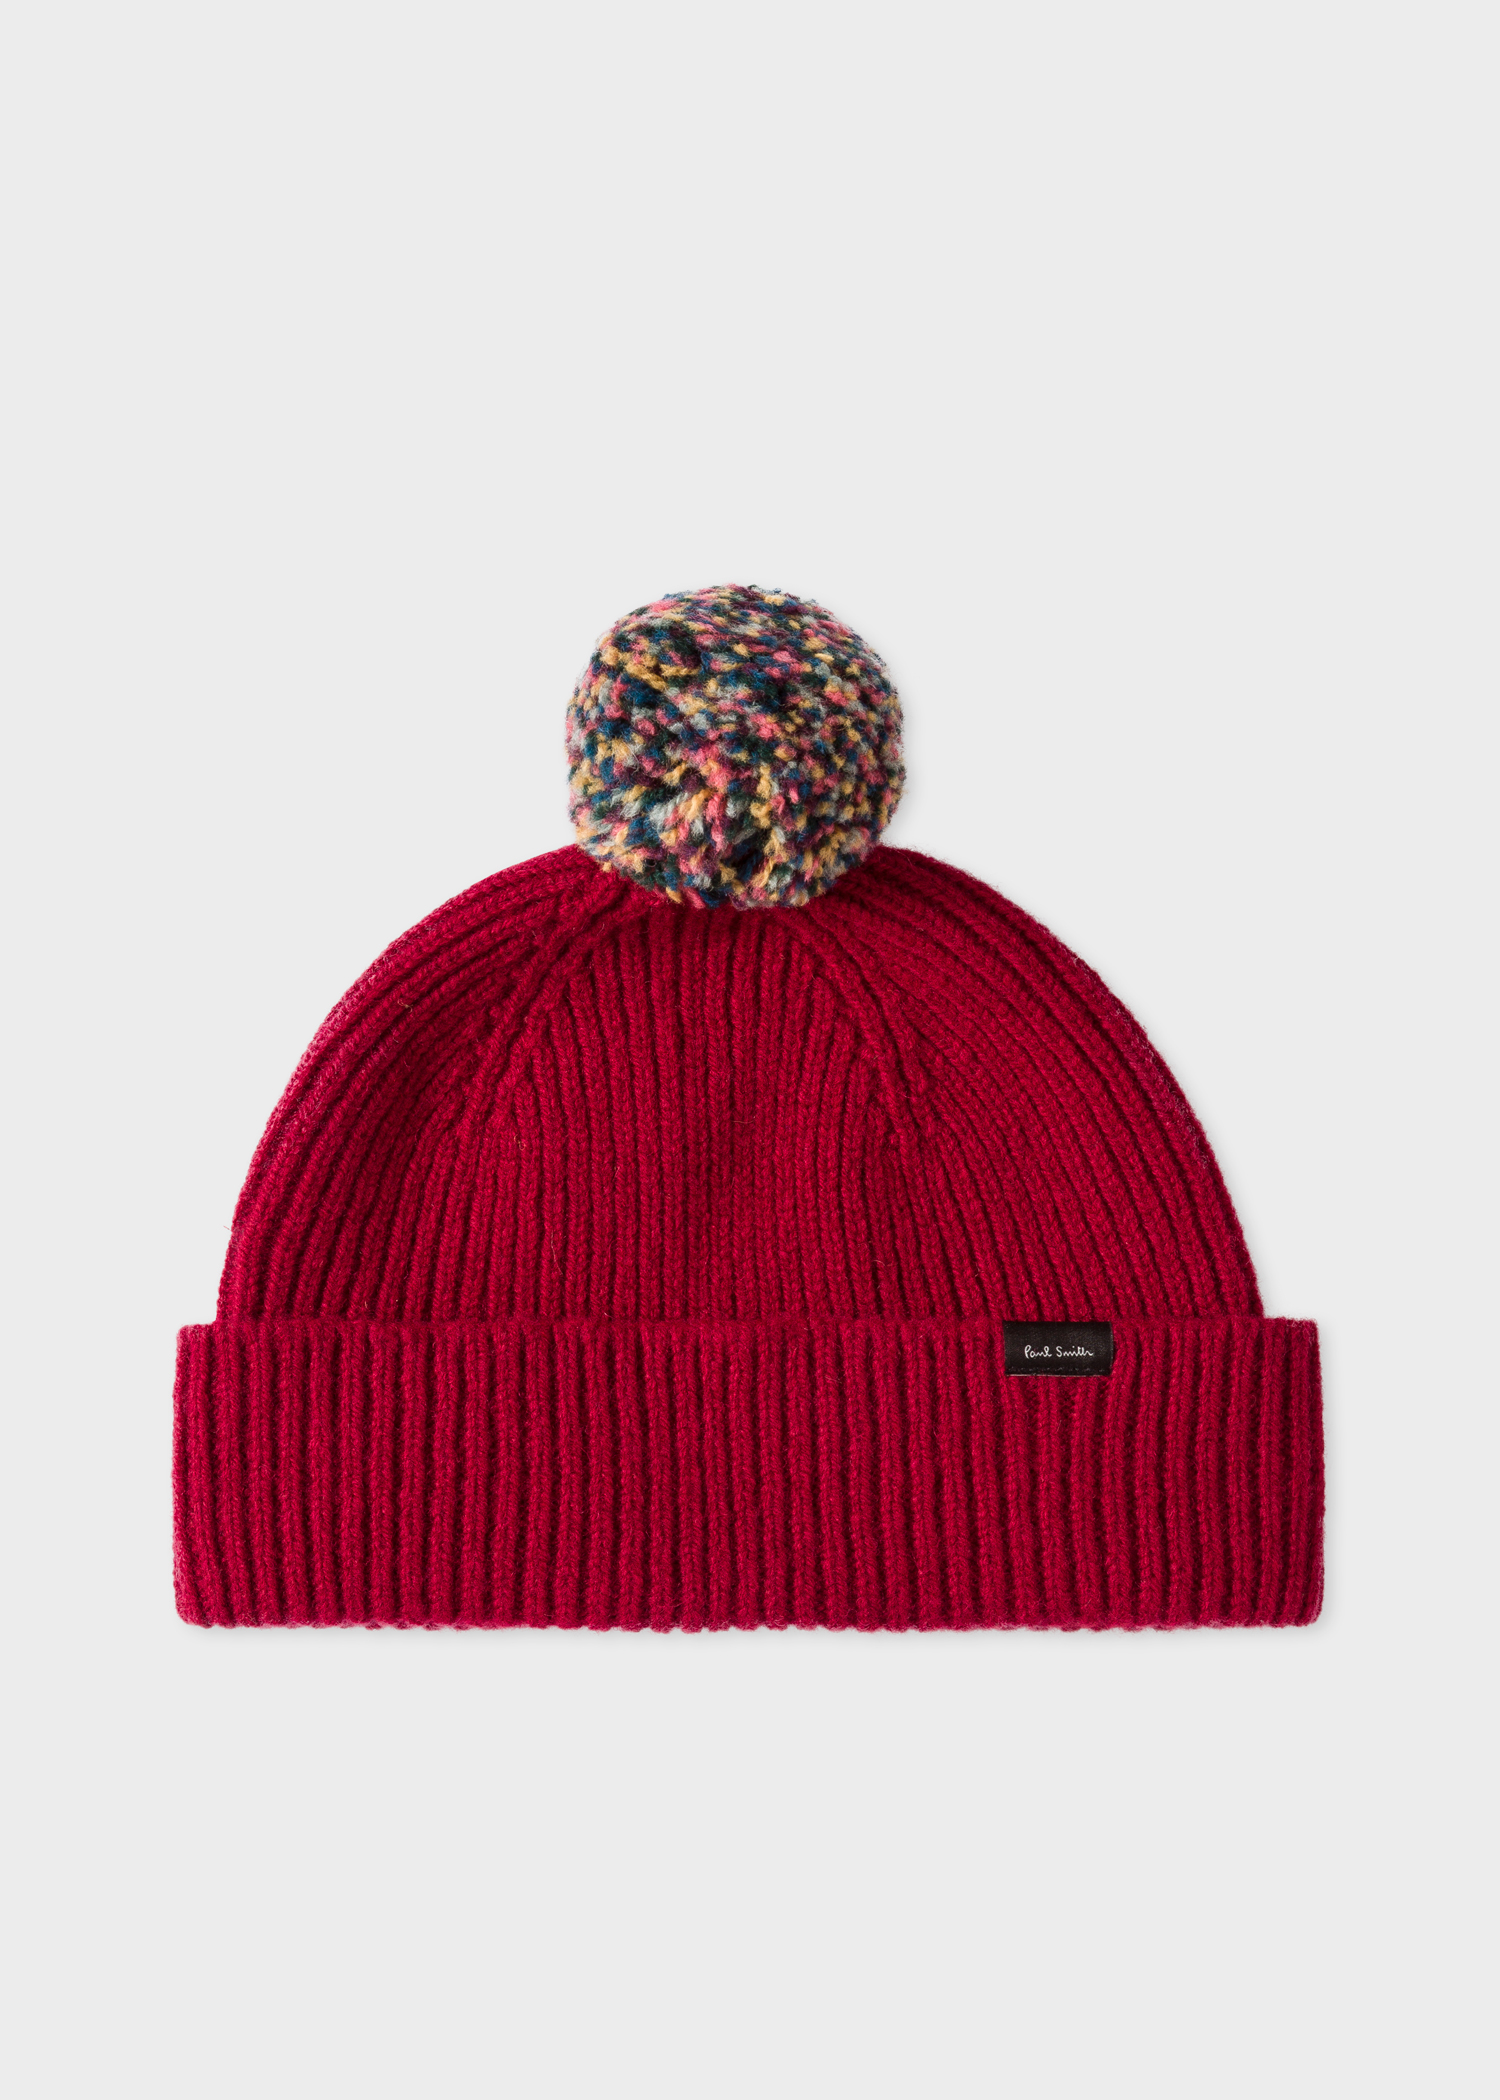 1ea62f566d3 Front View - Men s Red Pom-Pom Wool Beanie Hat Paul Smith